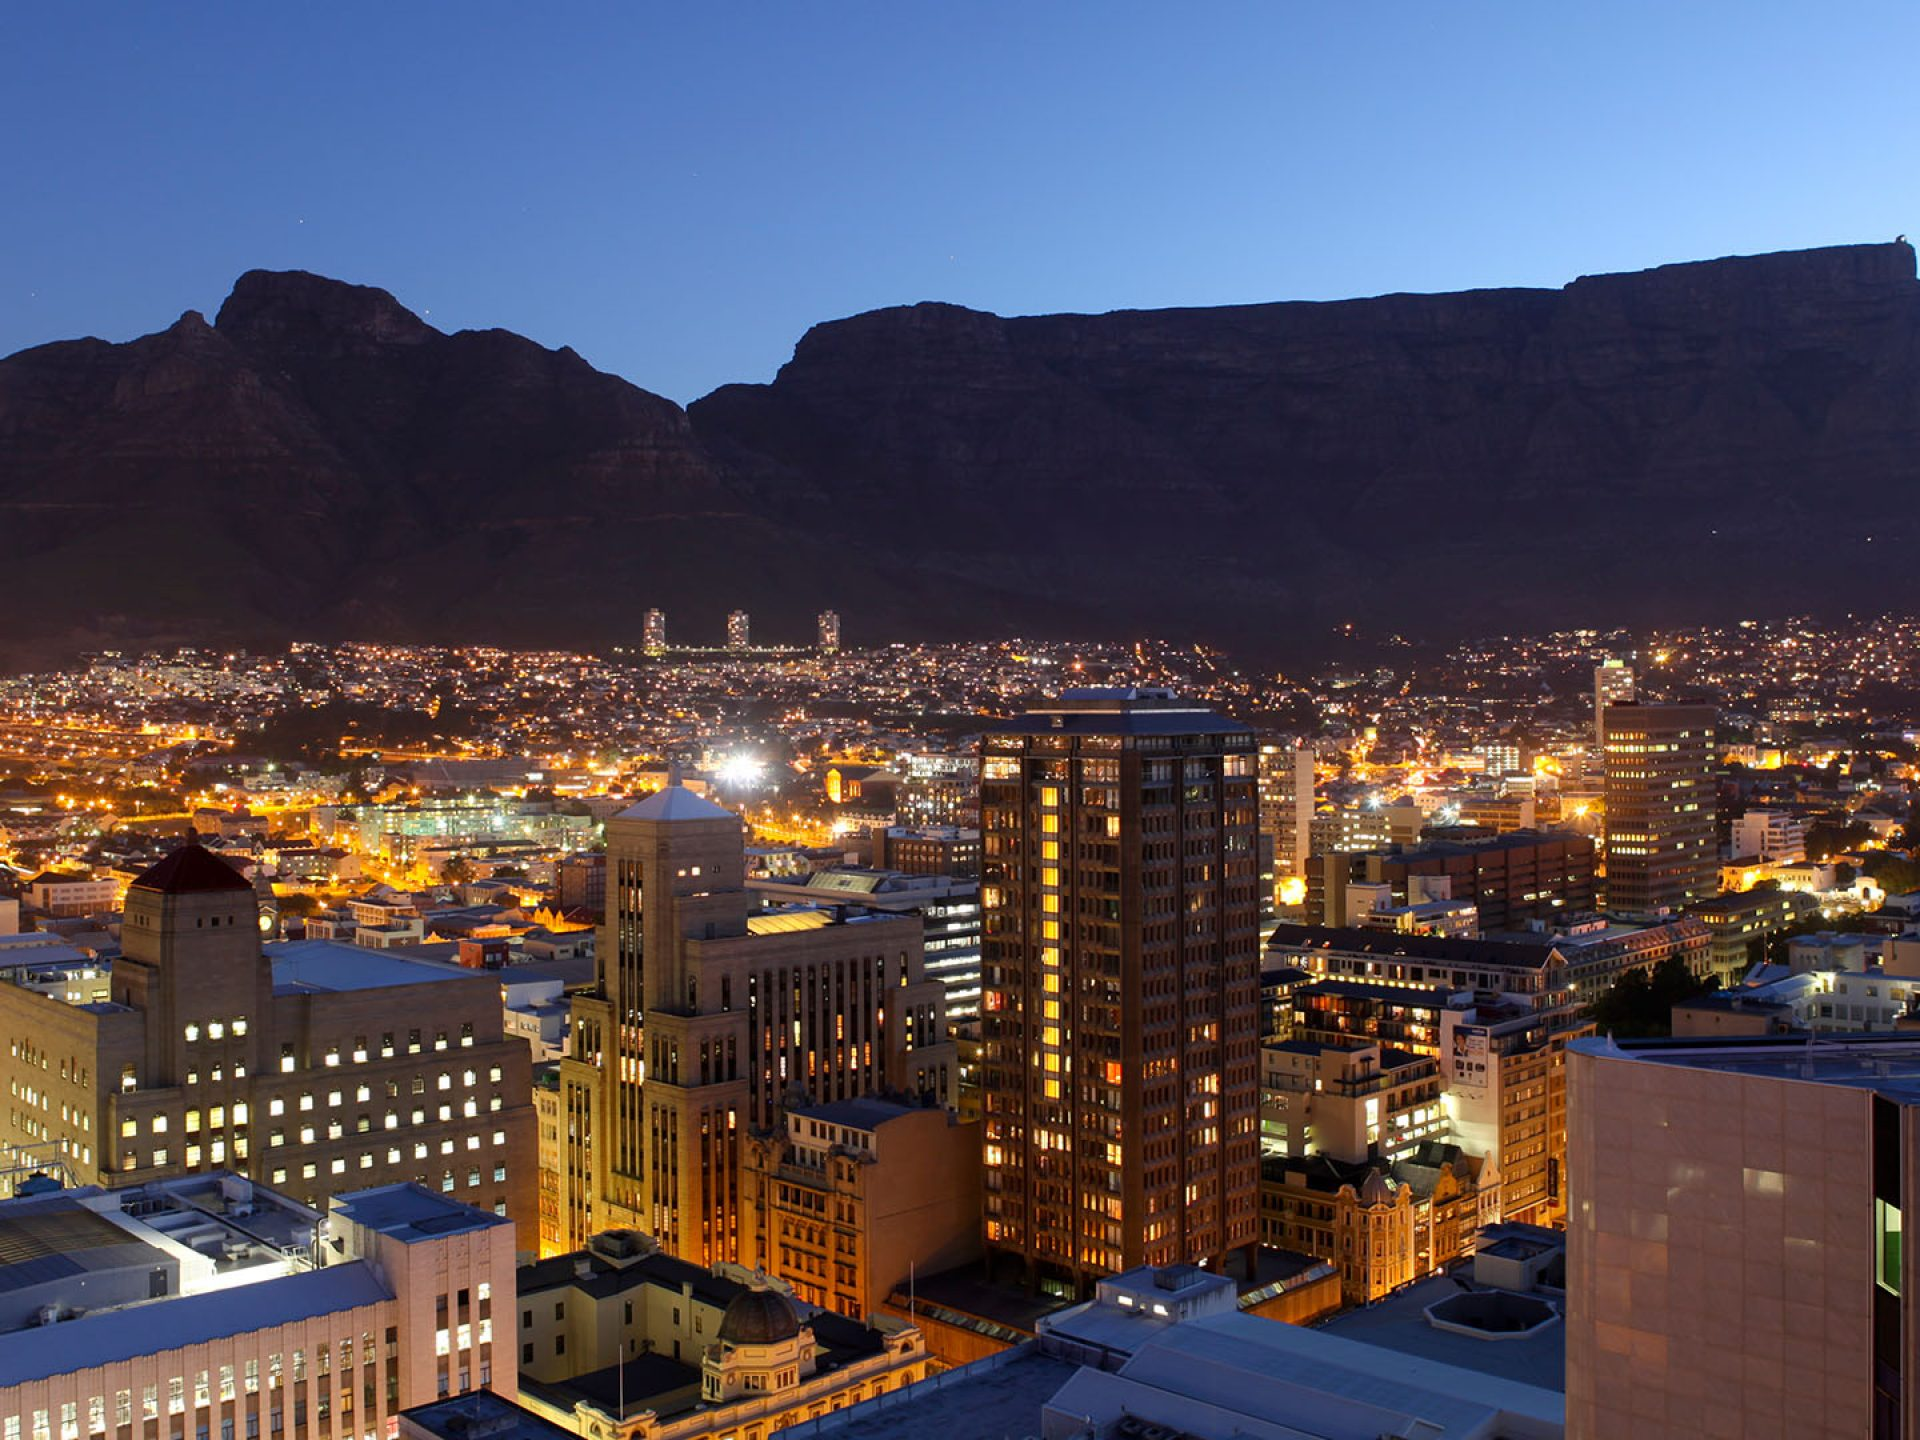 View The City Of Cape Town And The Mountain By Night